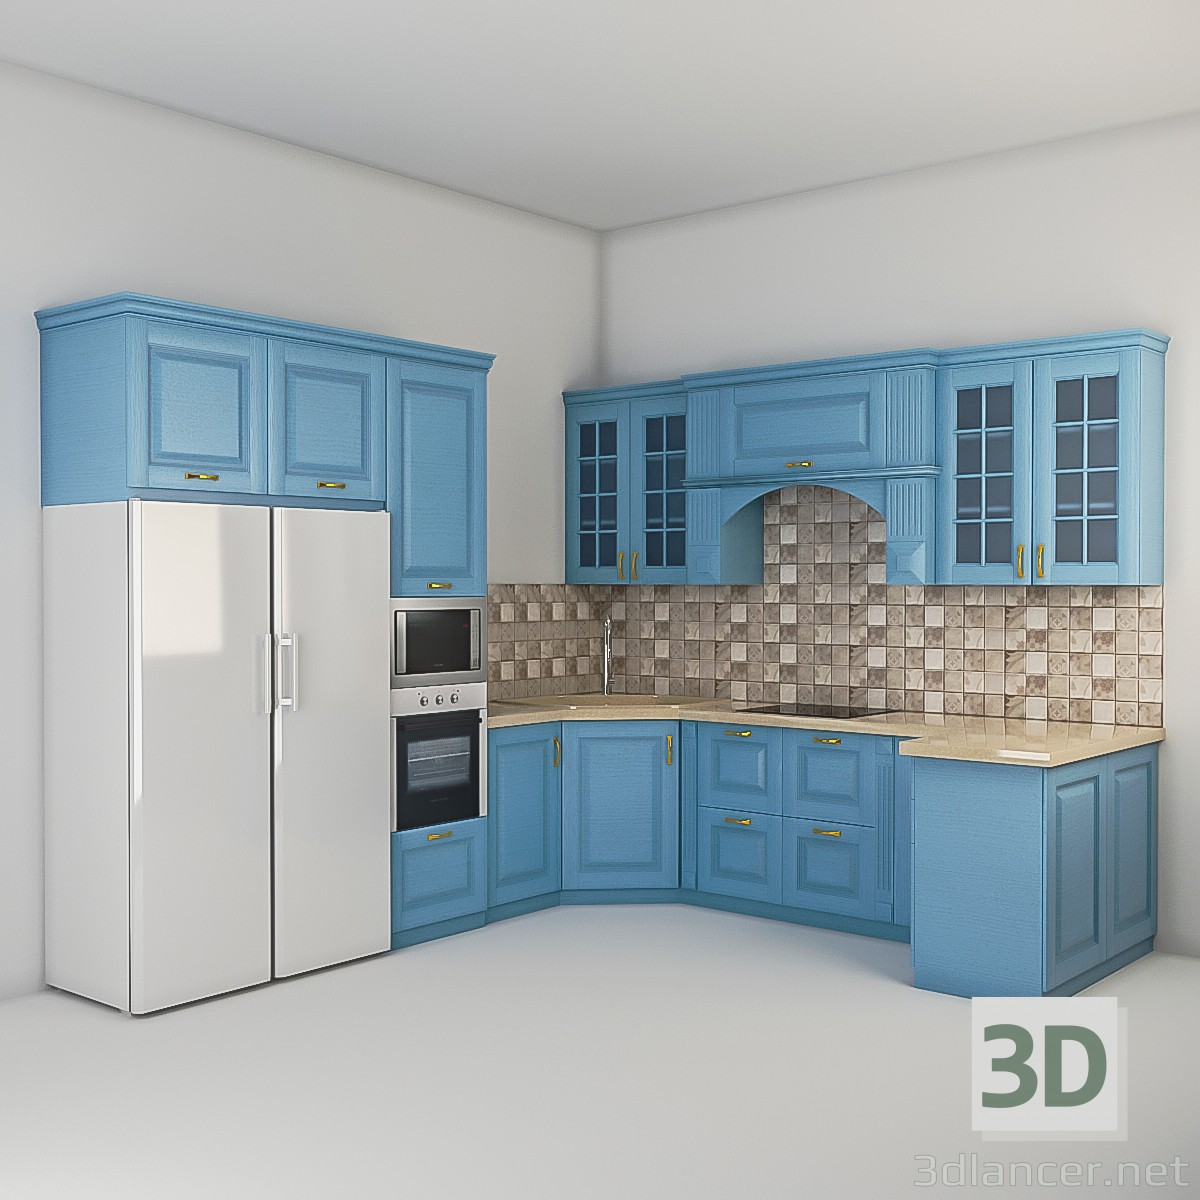 3d model kitchen in the style of classicism id 15926 for Kitchen modeler